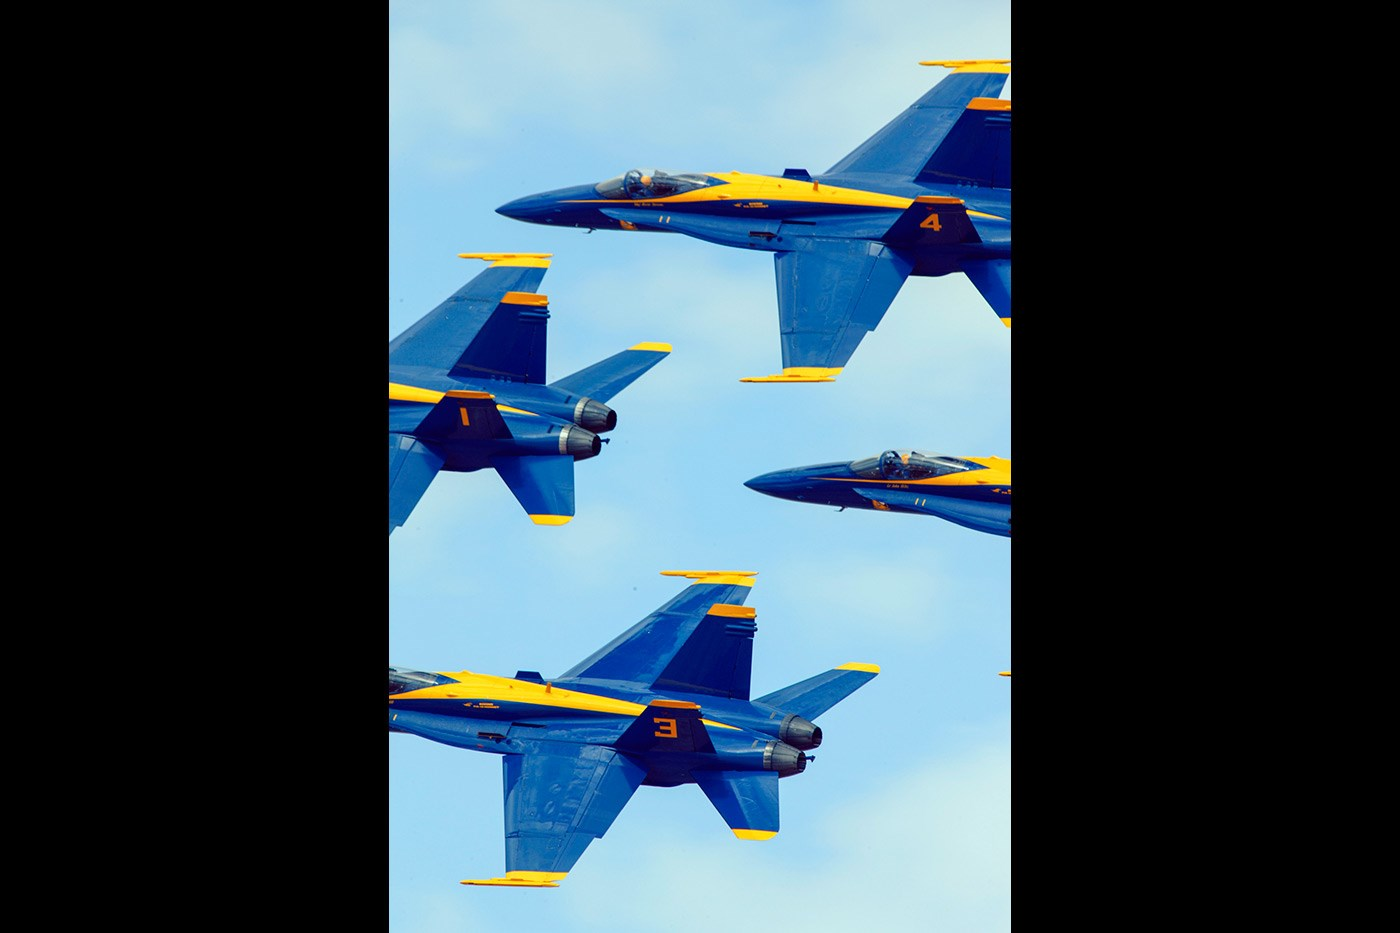 <p>The US Blue Angels display team in action at El Centro, California</p>